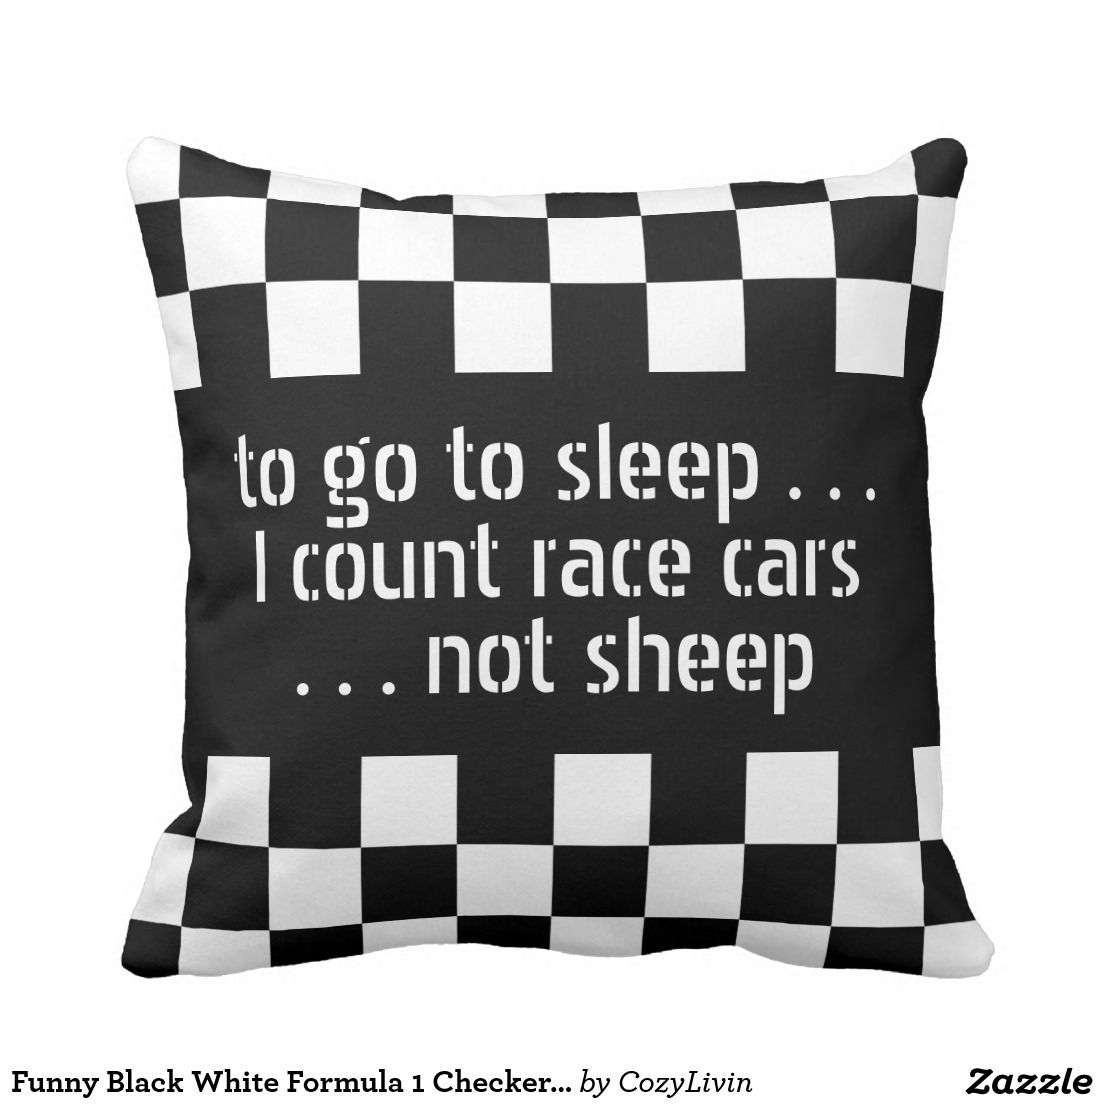 Cool Black White Formula 1 Checkered Flags Pattern Throw Pillow Zazzle Com Cars Room Race Car Room Race Car Bedroom